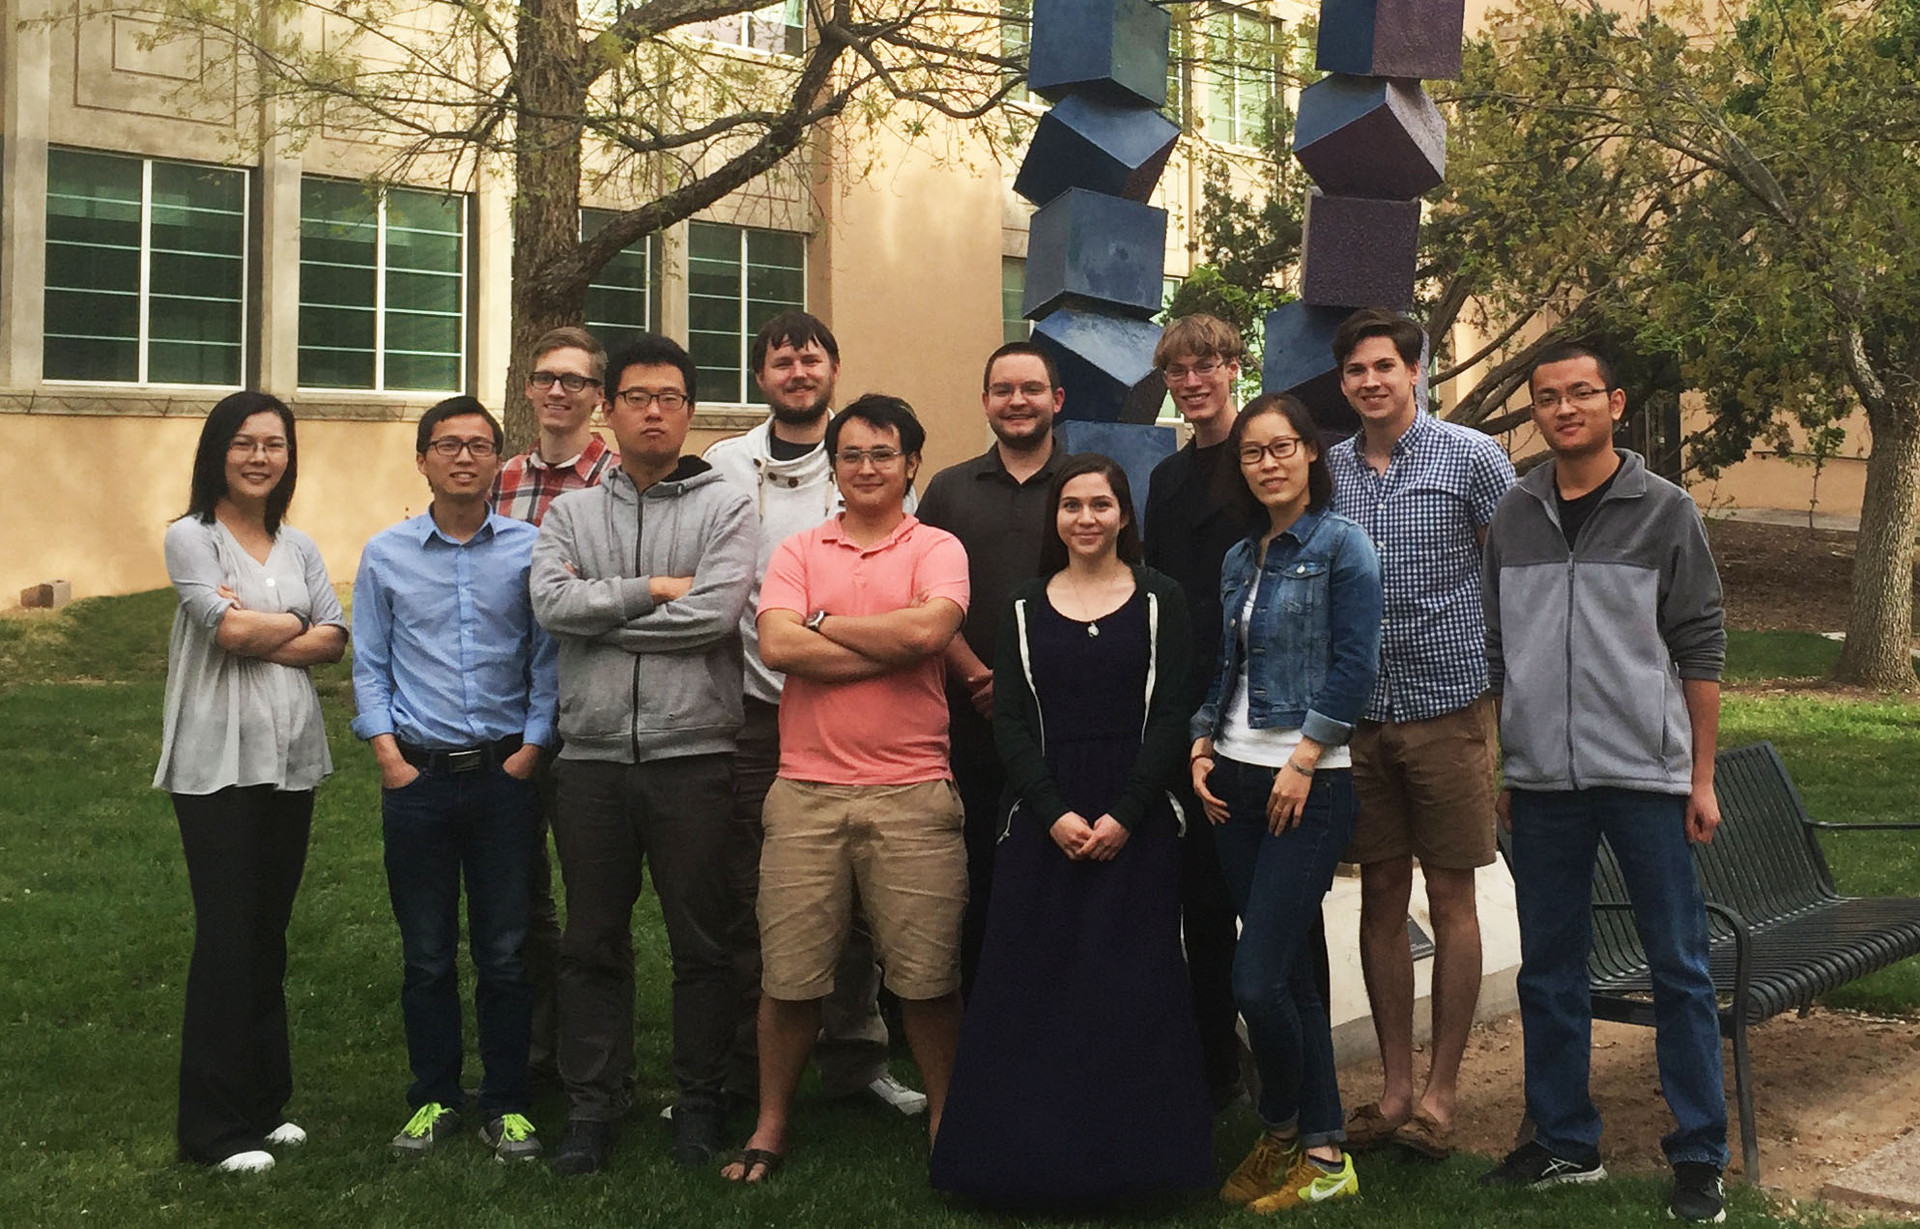 Cui Group, Clark Hall, UNM, April 2017